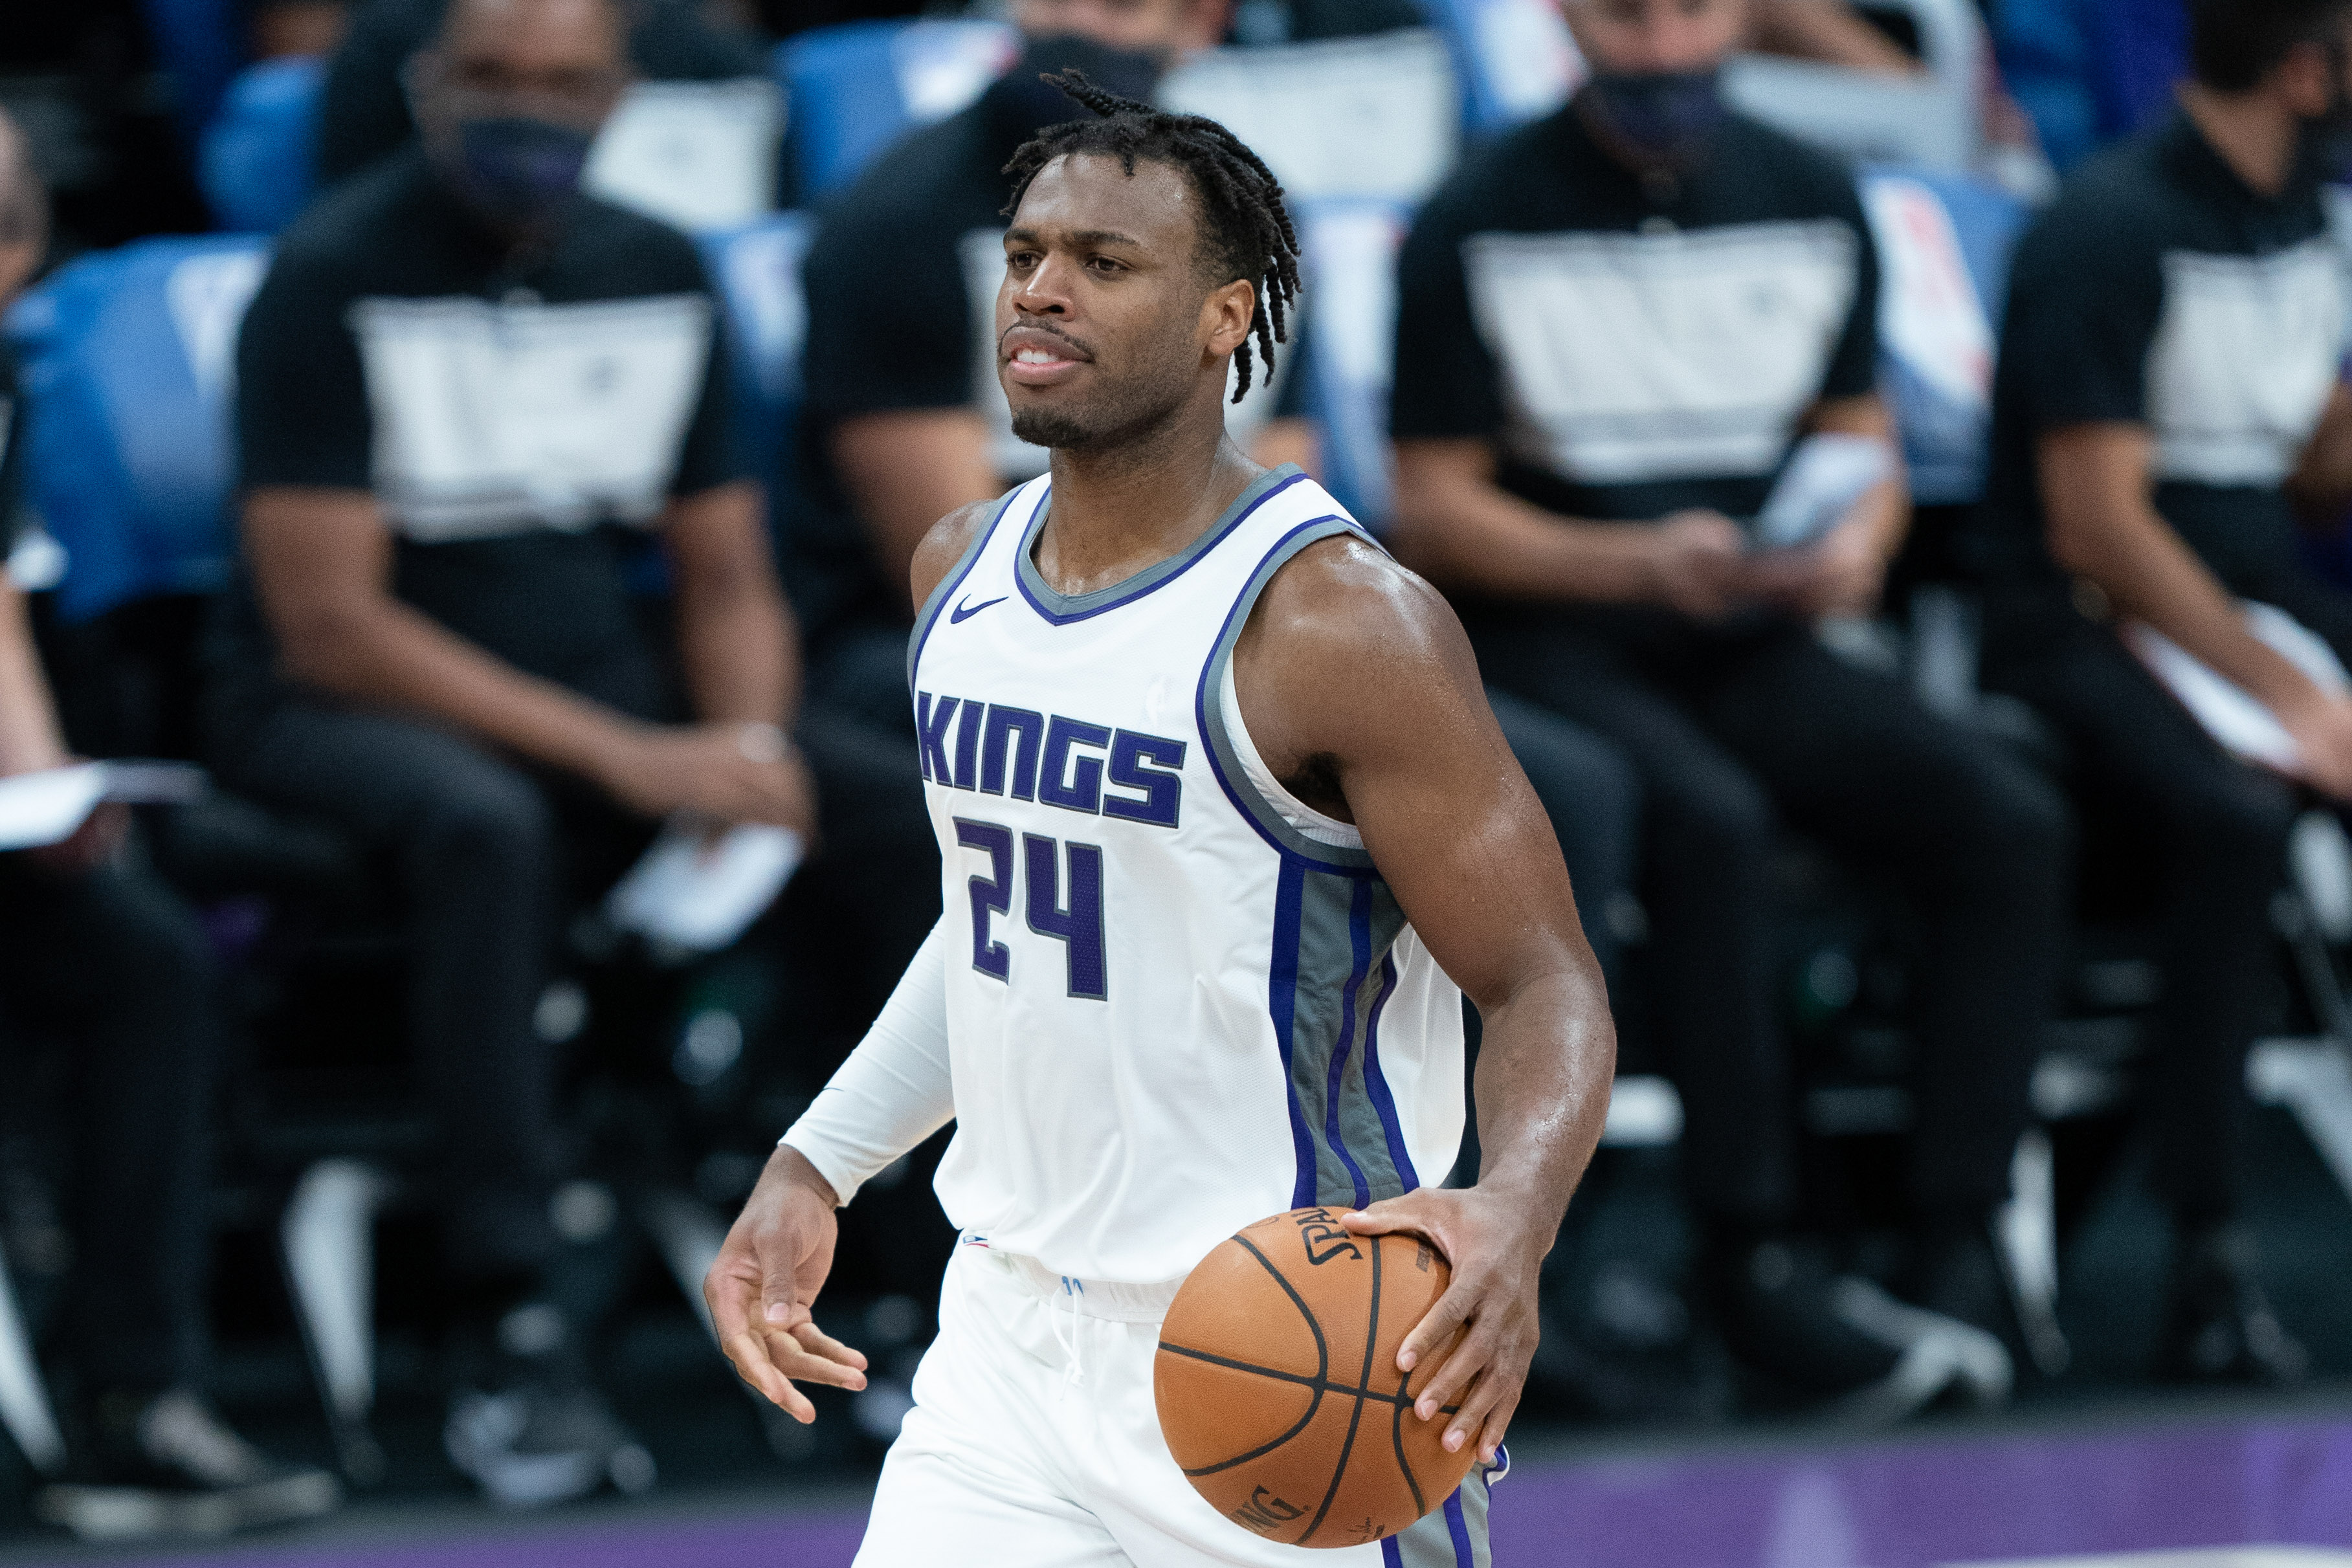 Sacramento Kings guard Buddy Hield during the third quarter against the Golden State Warriors at Golden 1 Center.